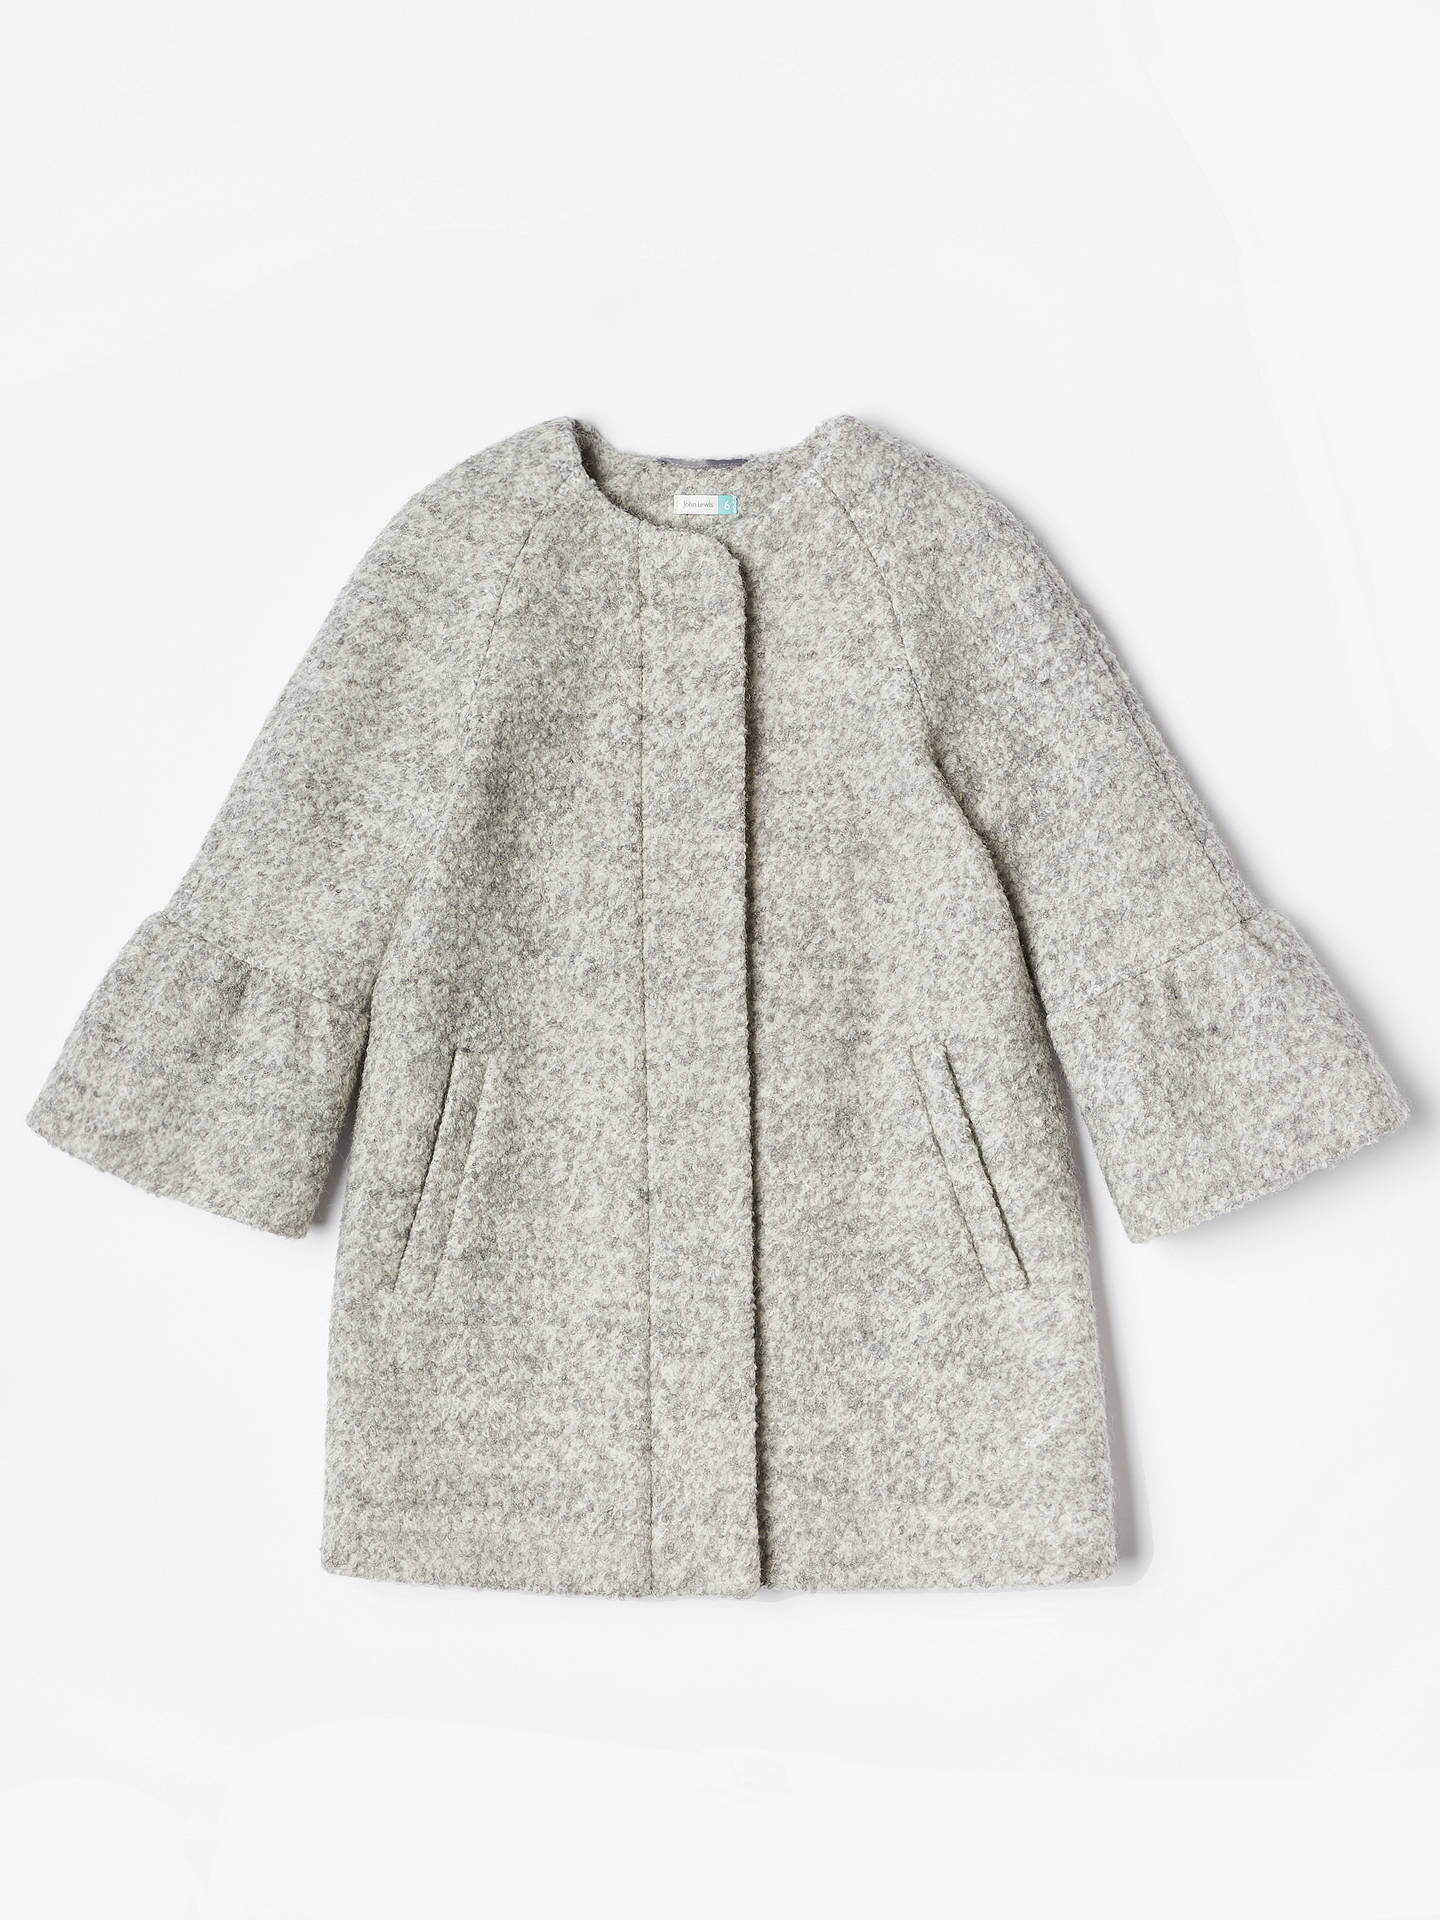 BuyJohn Lewis & Partners Girls' Bell Sleeve Coat, Grey, 2 years Online at johnlewis.com